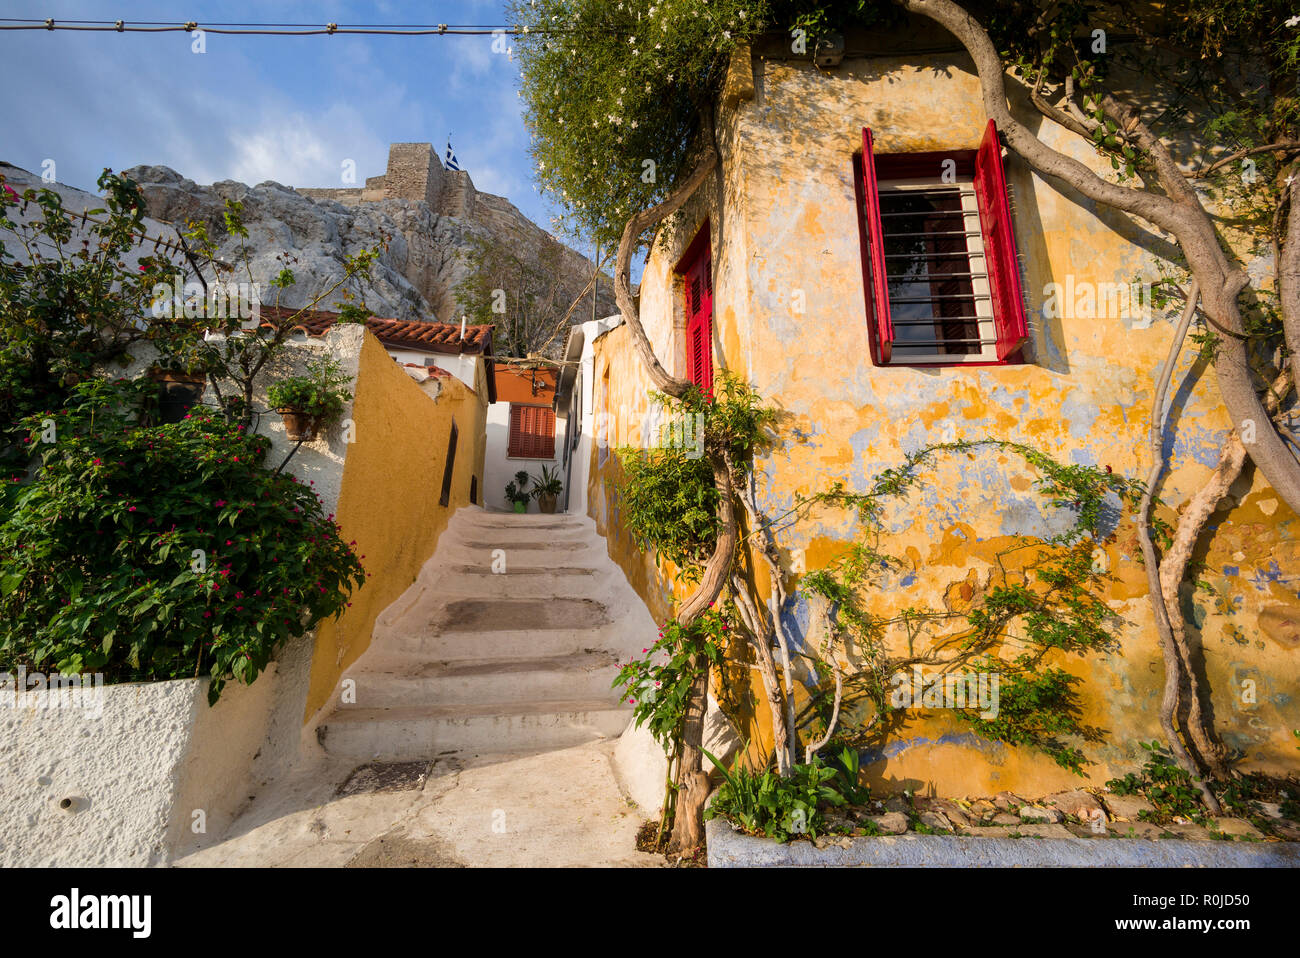 Athens. Greece. Cycladic style architecture of Anafiotika on the edge of the Plaka district nestles against the Acropolis. Stock Photo